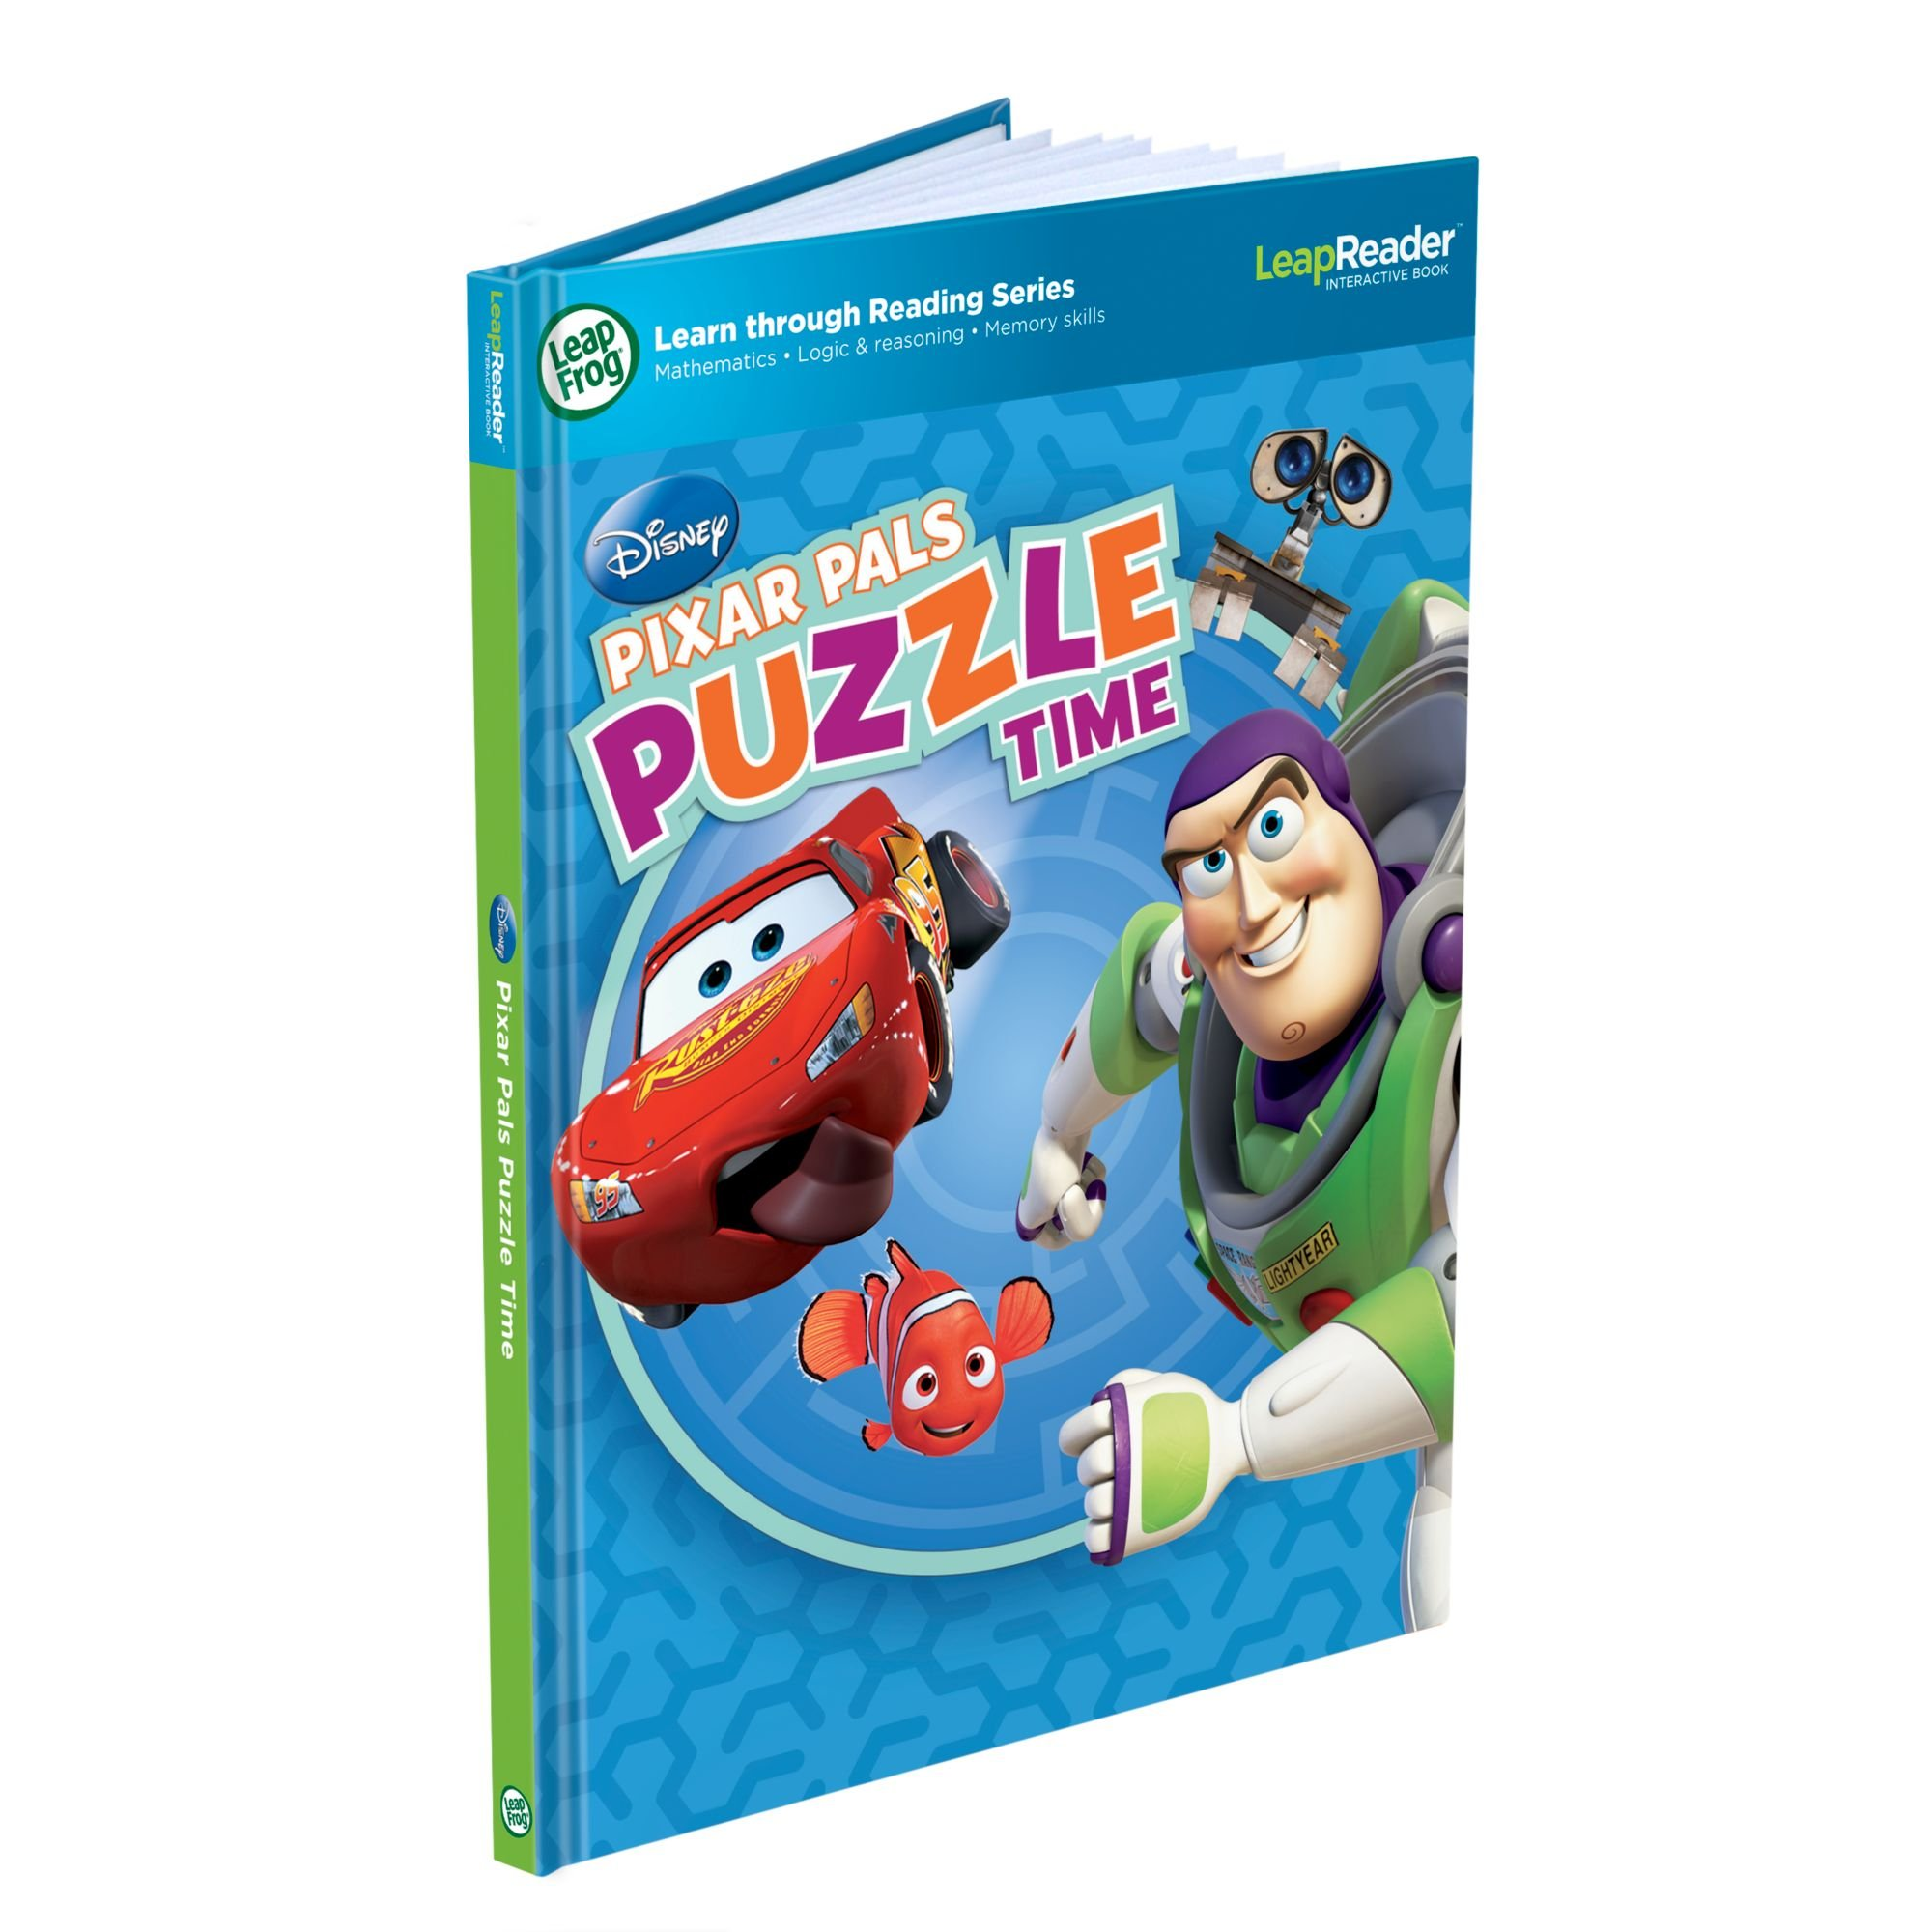 LeapFrog Tag Game Book: Pixar Pals Puzzle Time by LeapFrog